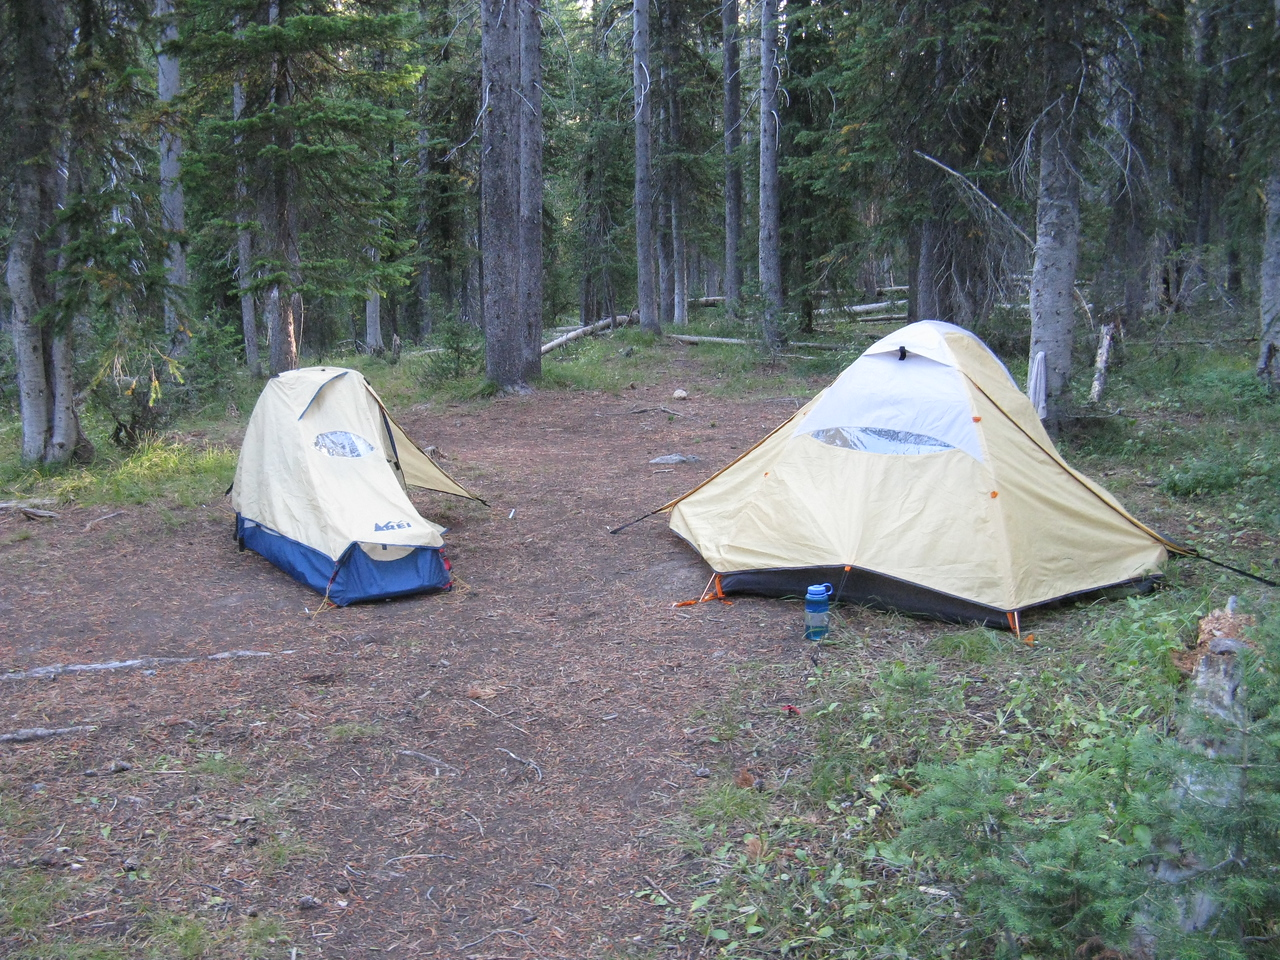 Yes - per Park directions, our tents were 100 yds from where we cooked.